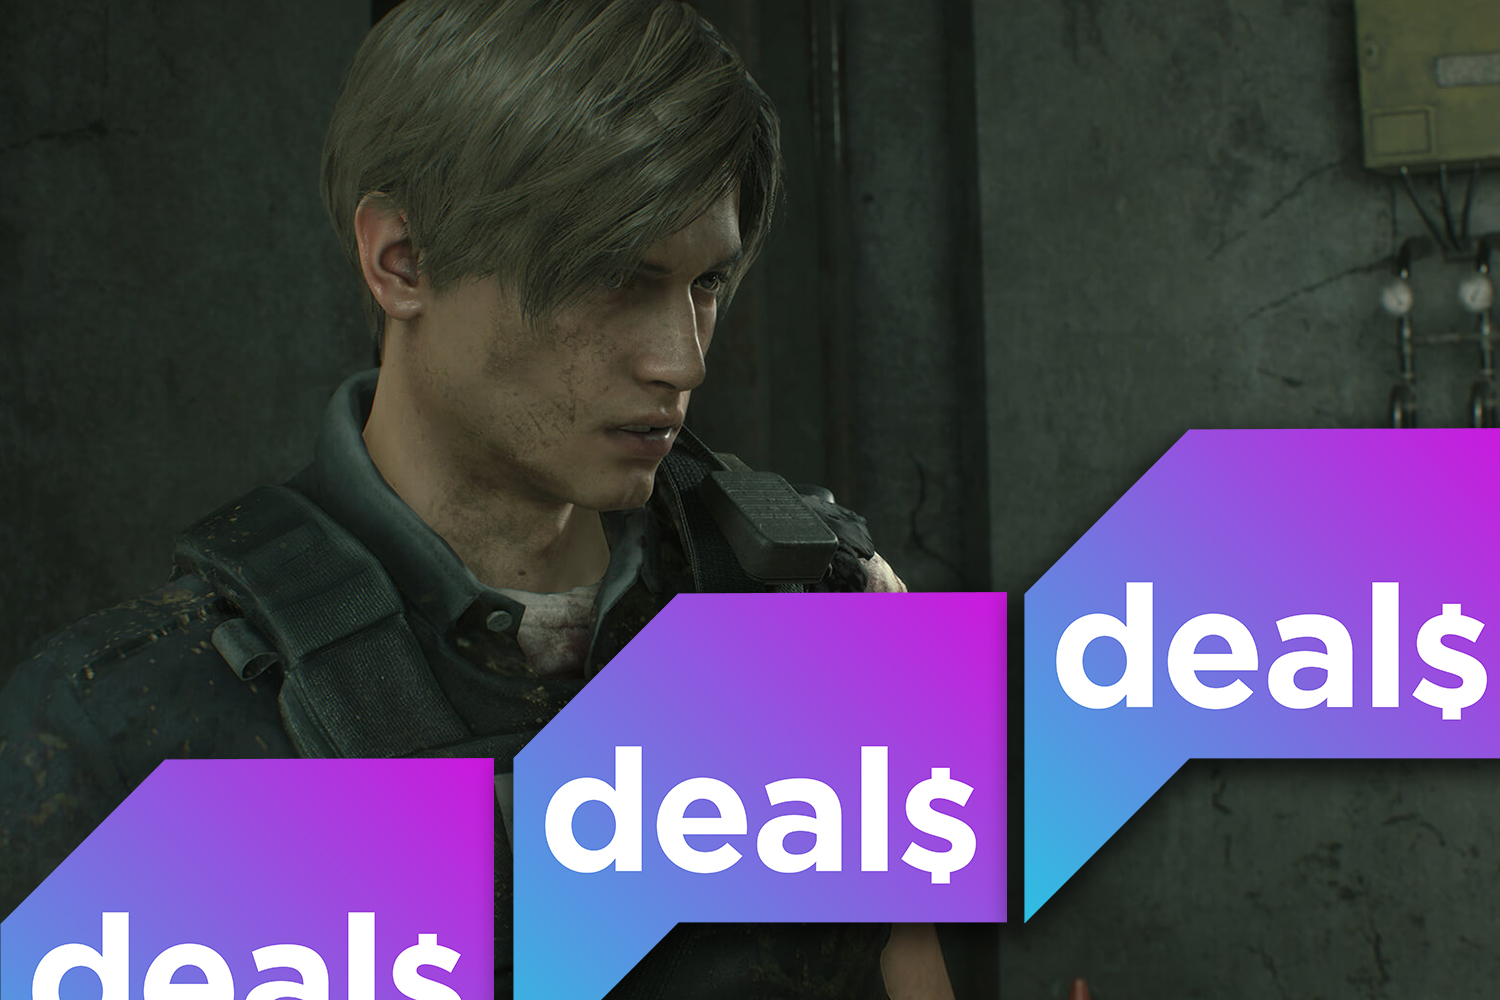 A screenshot of Leon from Resident Evil 2 with the Polygon Deals logo